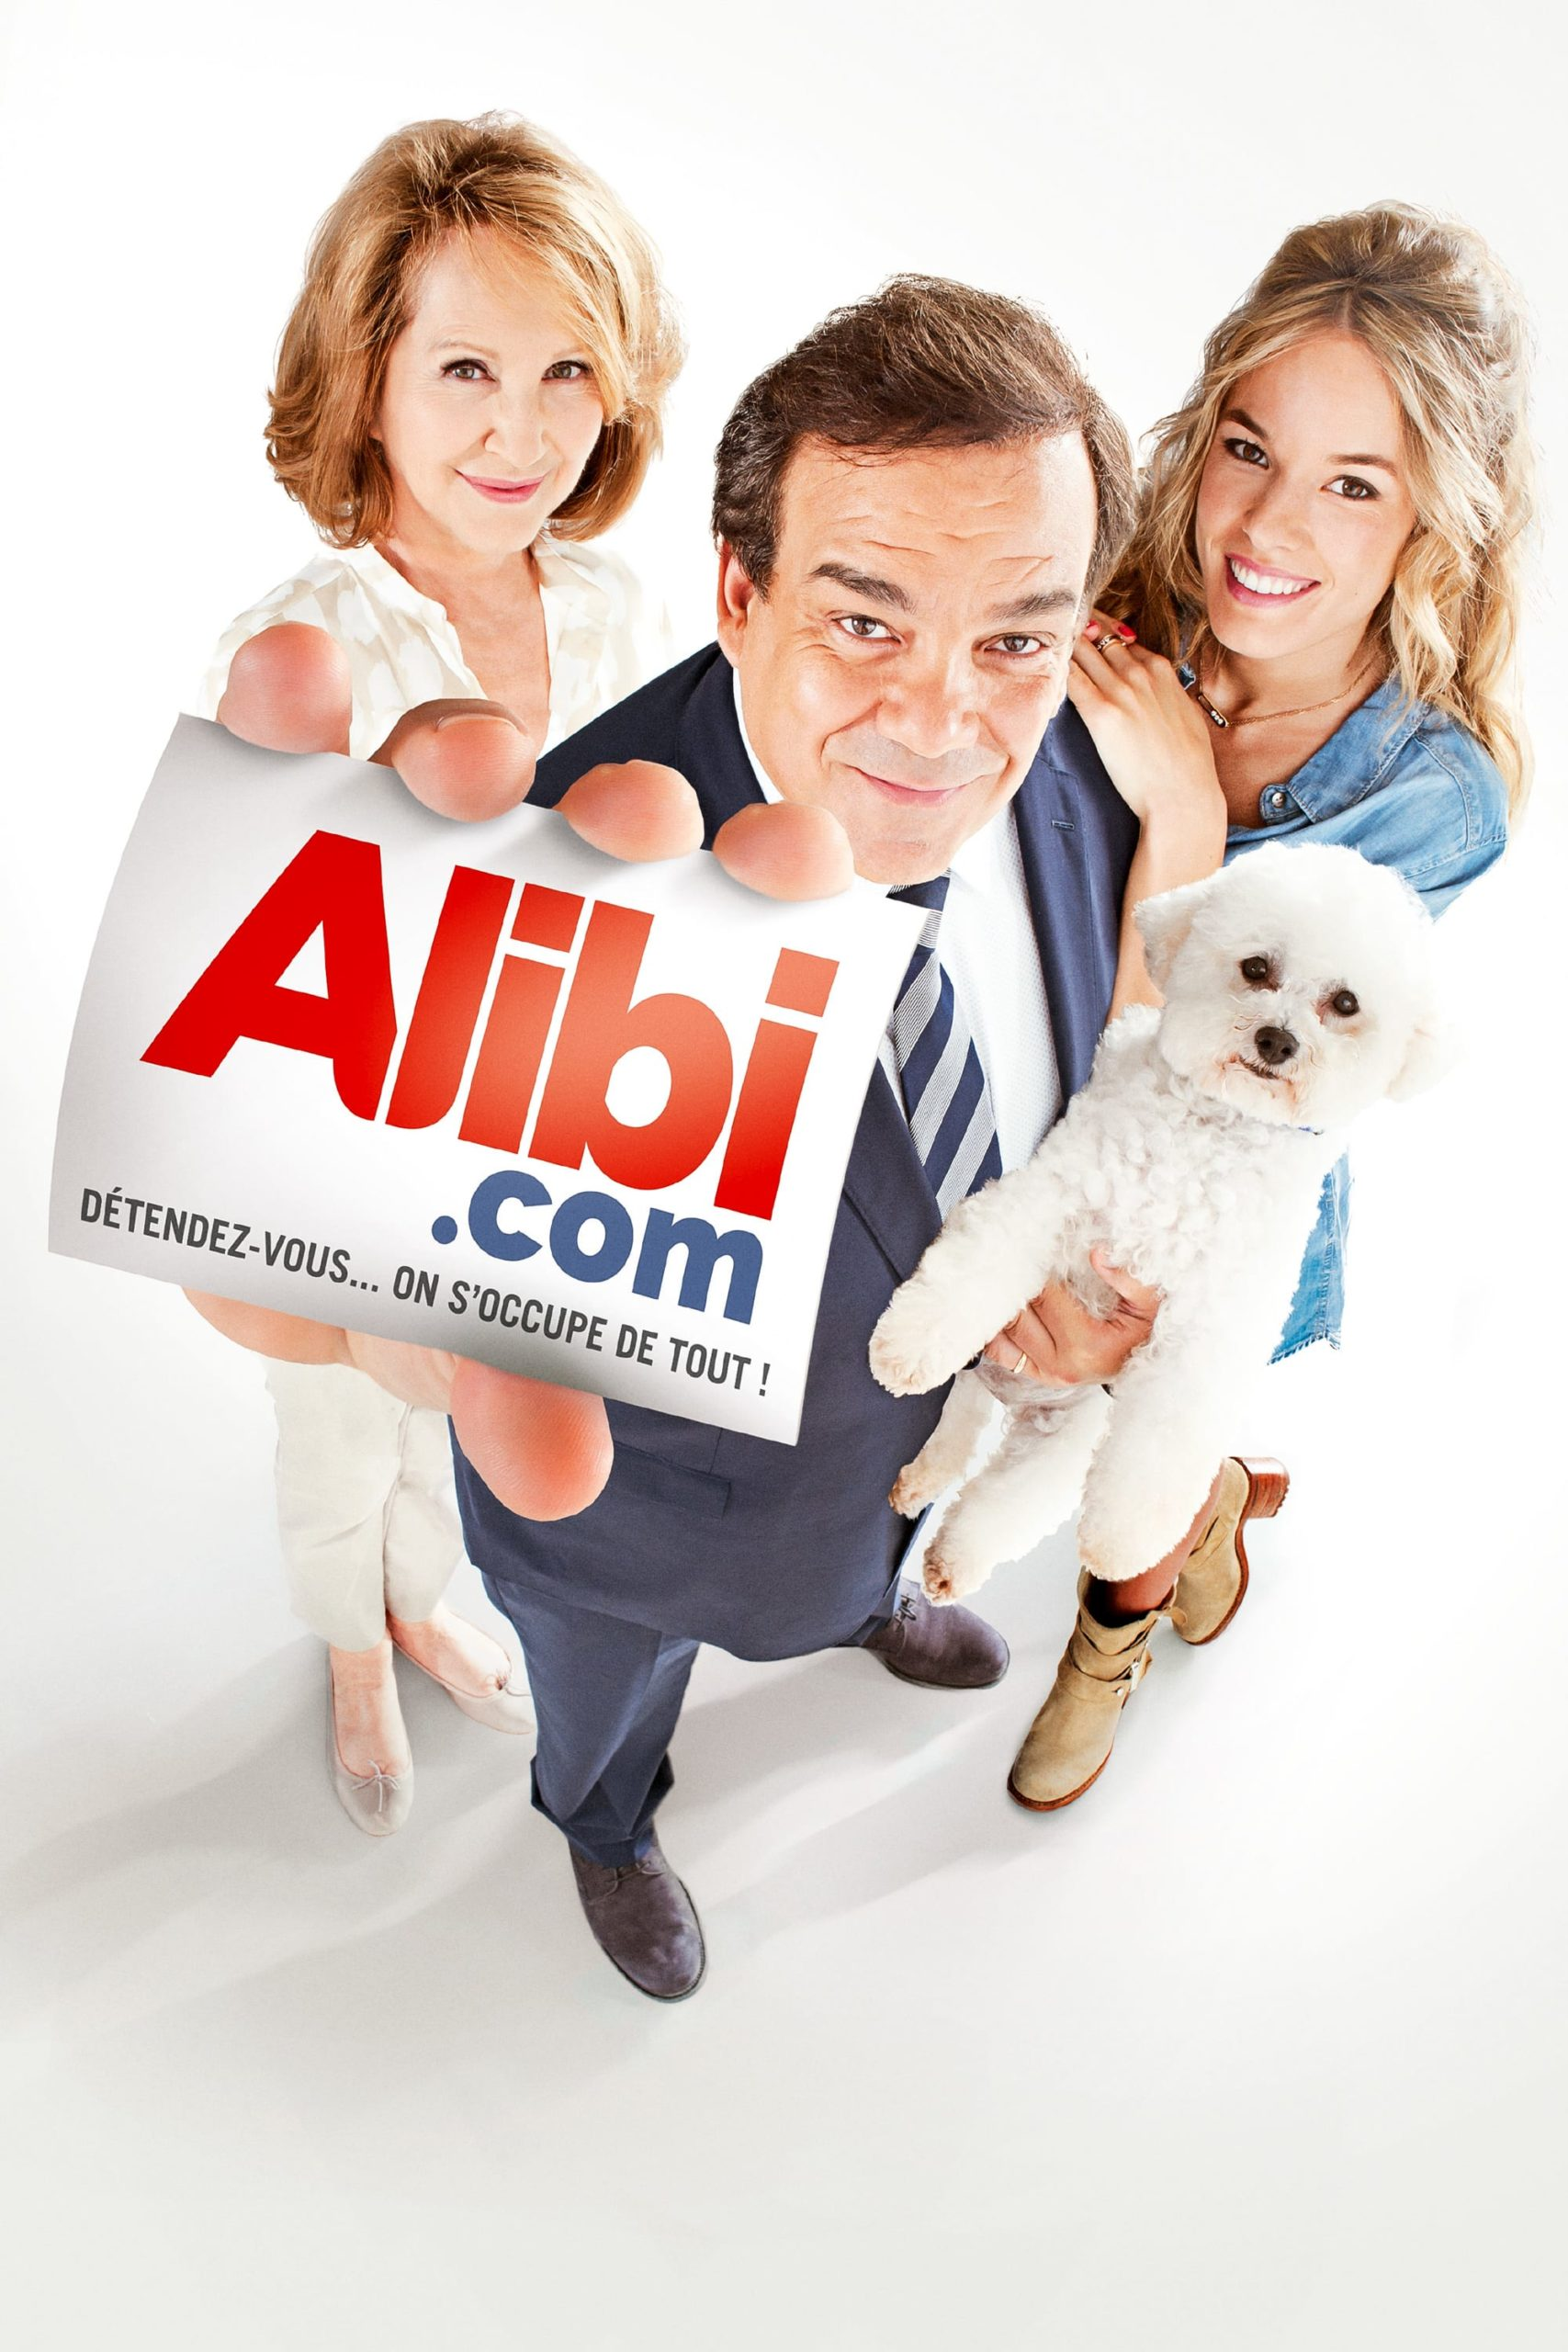 Film, Alibi.com, une comedie disponible en streaming sur